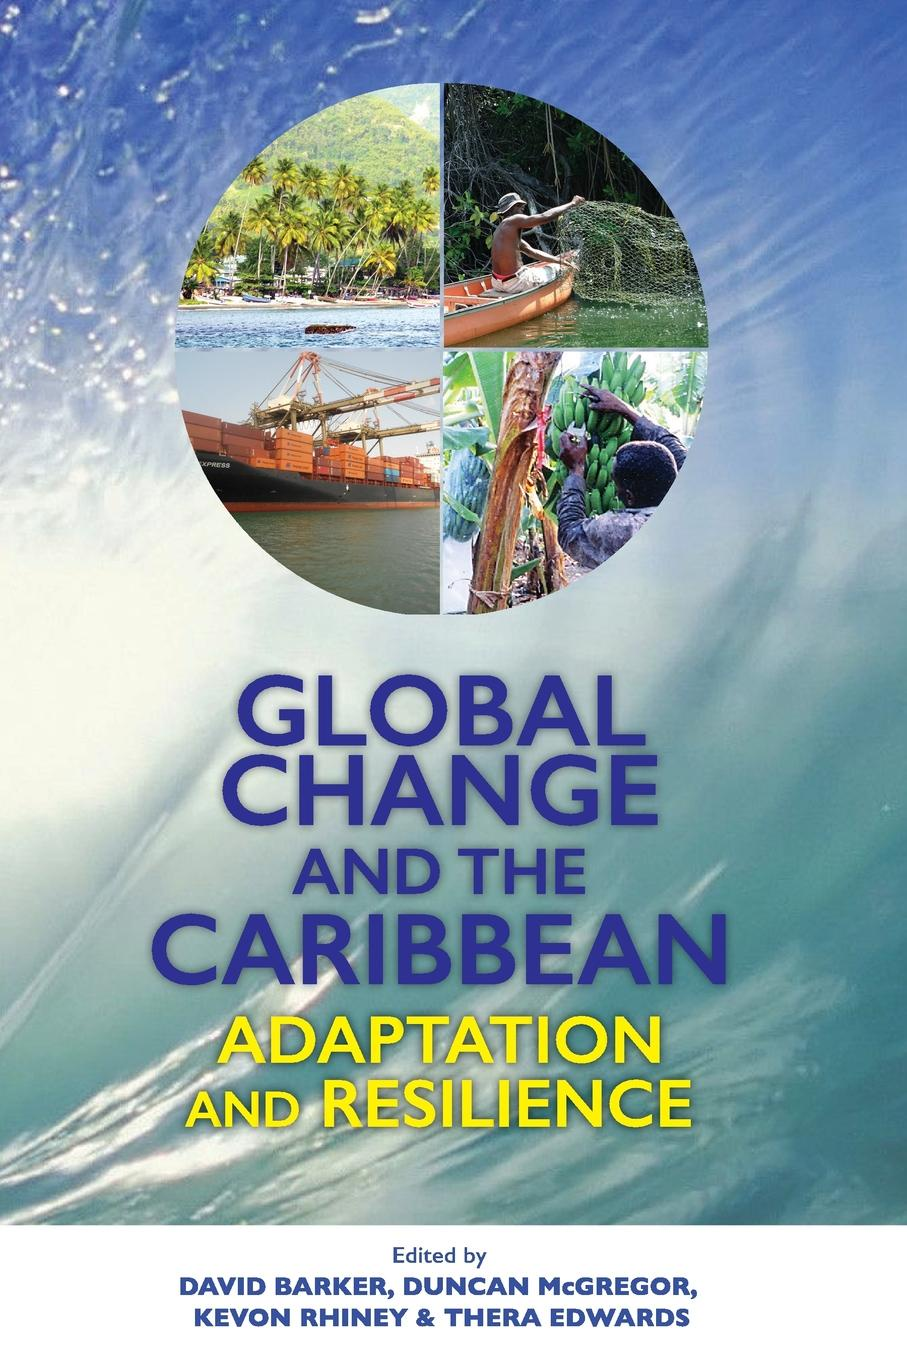 Global Change and the Caribbean. Adaptation and Resilience the adaptation diet